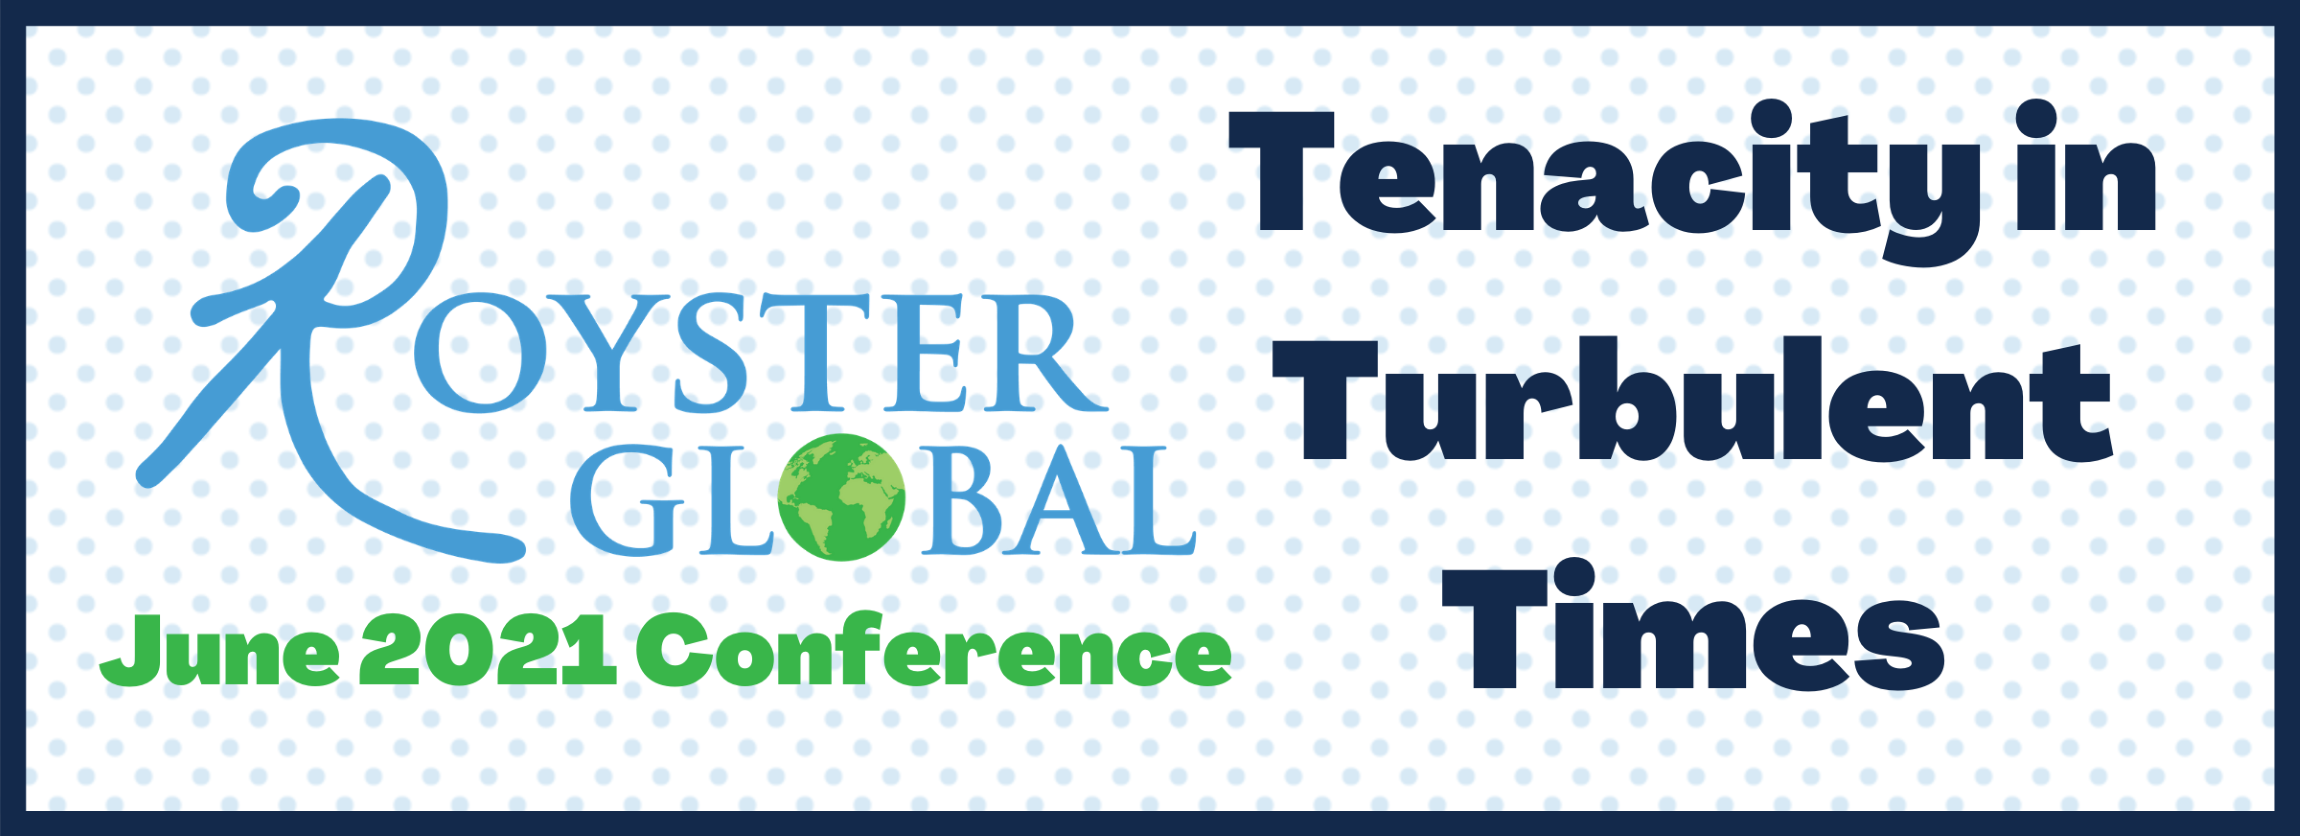 Royster Global June 2021 Conference - Tenacity in Turbulent Times